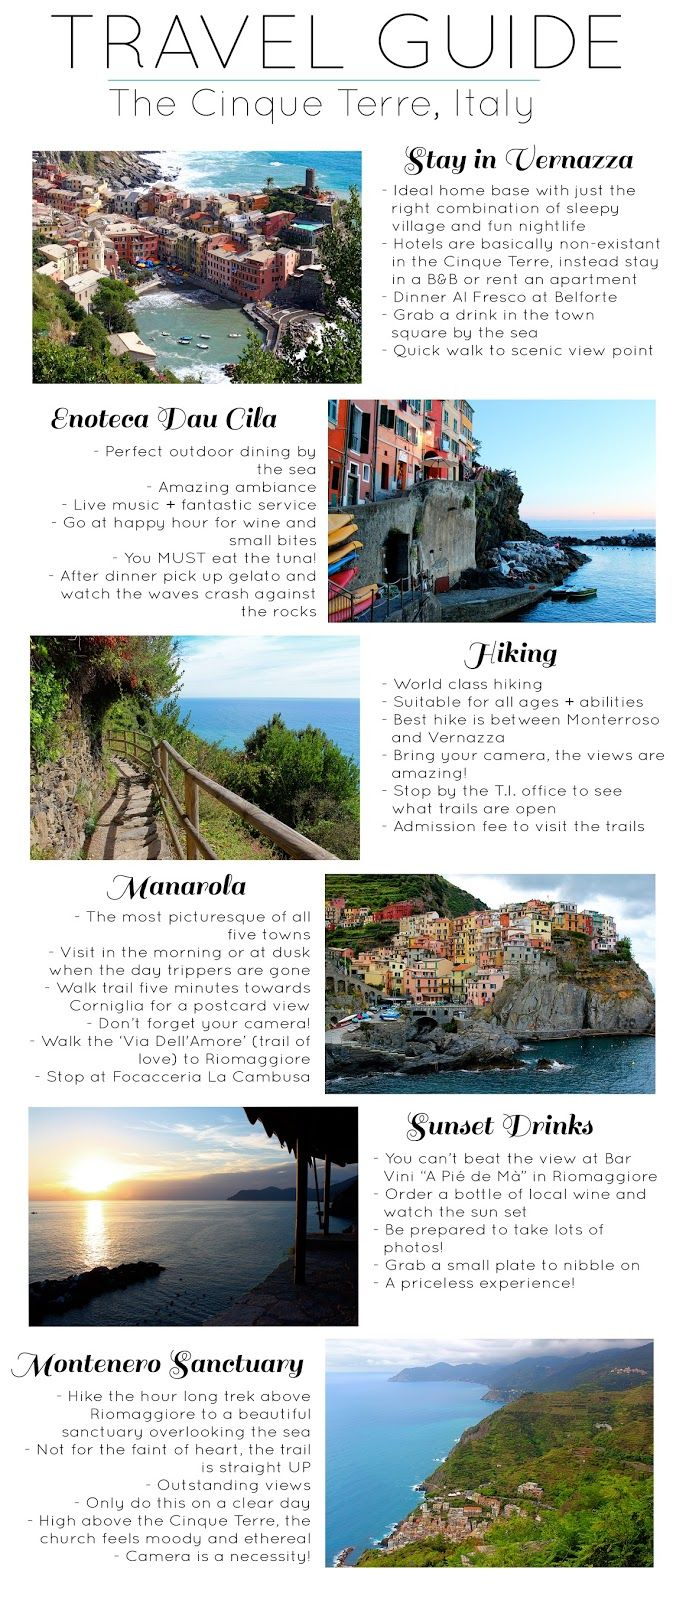 Travel Guide :: The Cinque Terre ✈✈✈ Here is your chance to win a Free Roundtrip Ticket to Pisa, Italy from anywhere in the world **GIVEAWAY** ✈✈✈ https://thedecisionmoment.com/free-roundtrip-tickets-to-europe-italy-pisa/